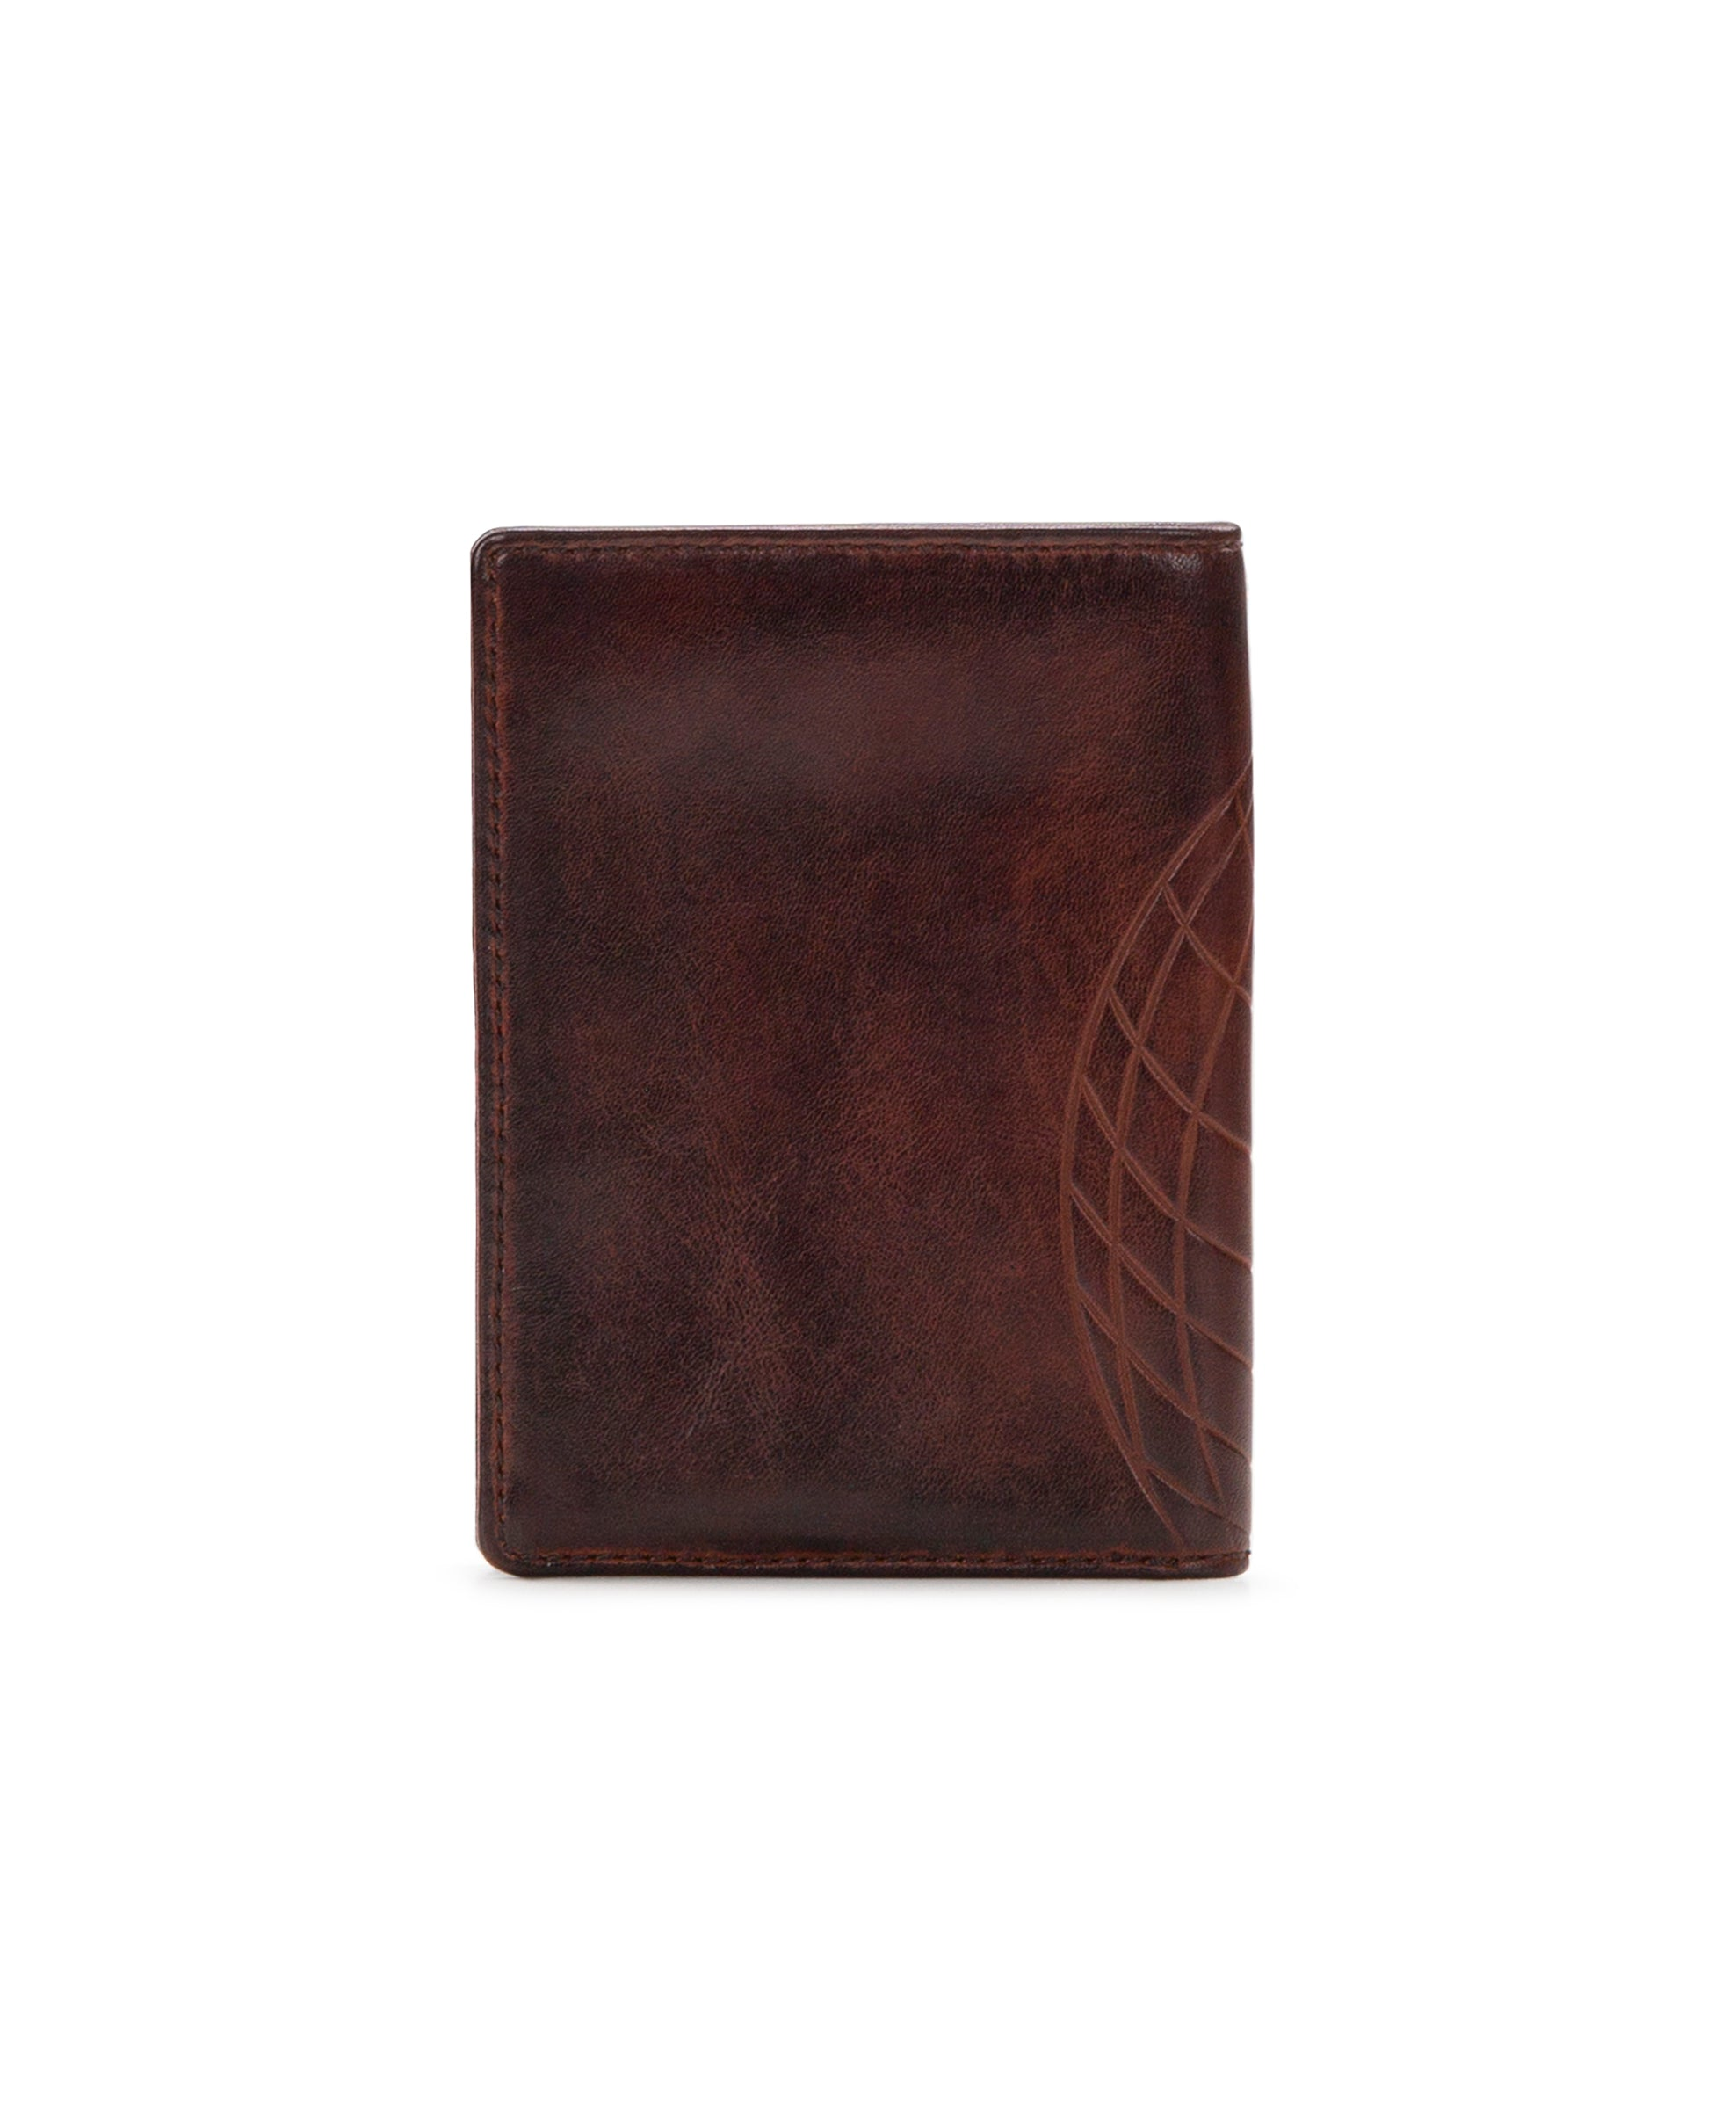 Passport Case - Compass 2